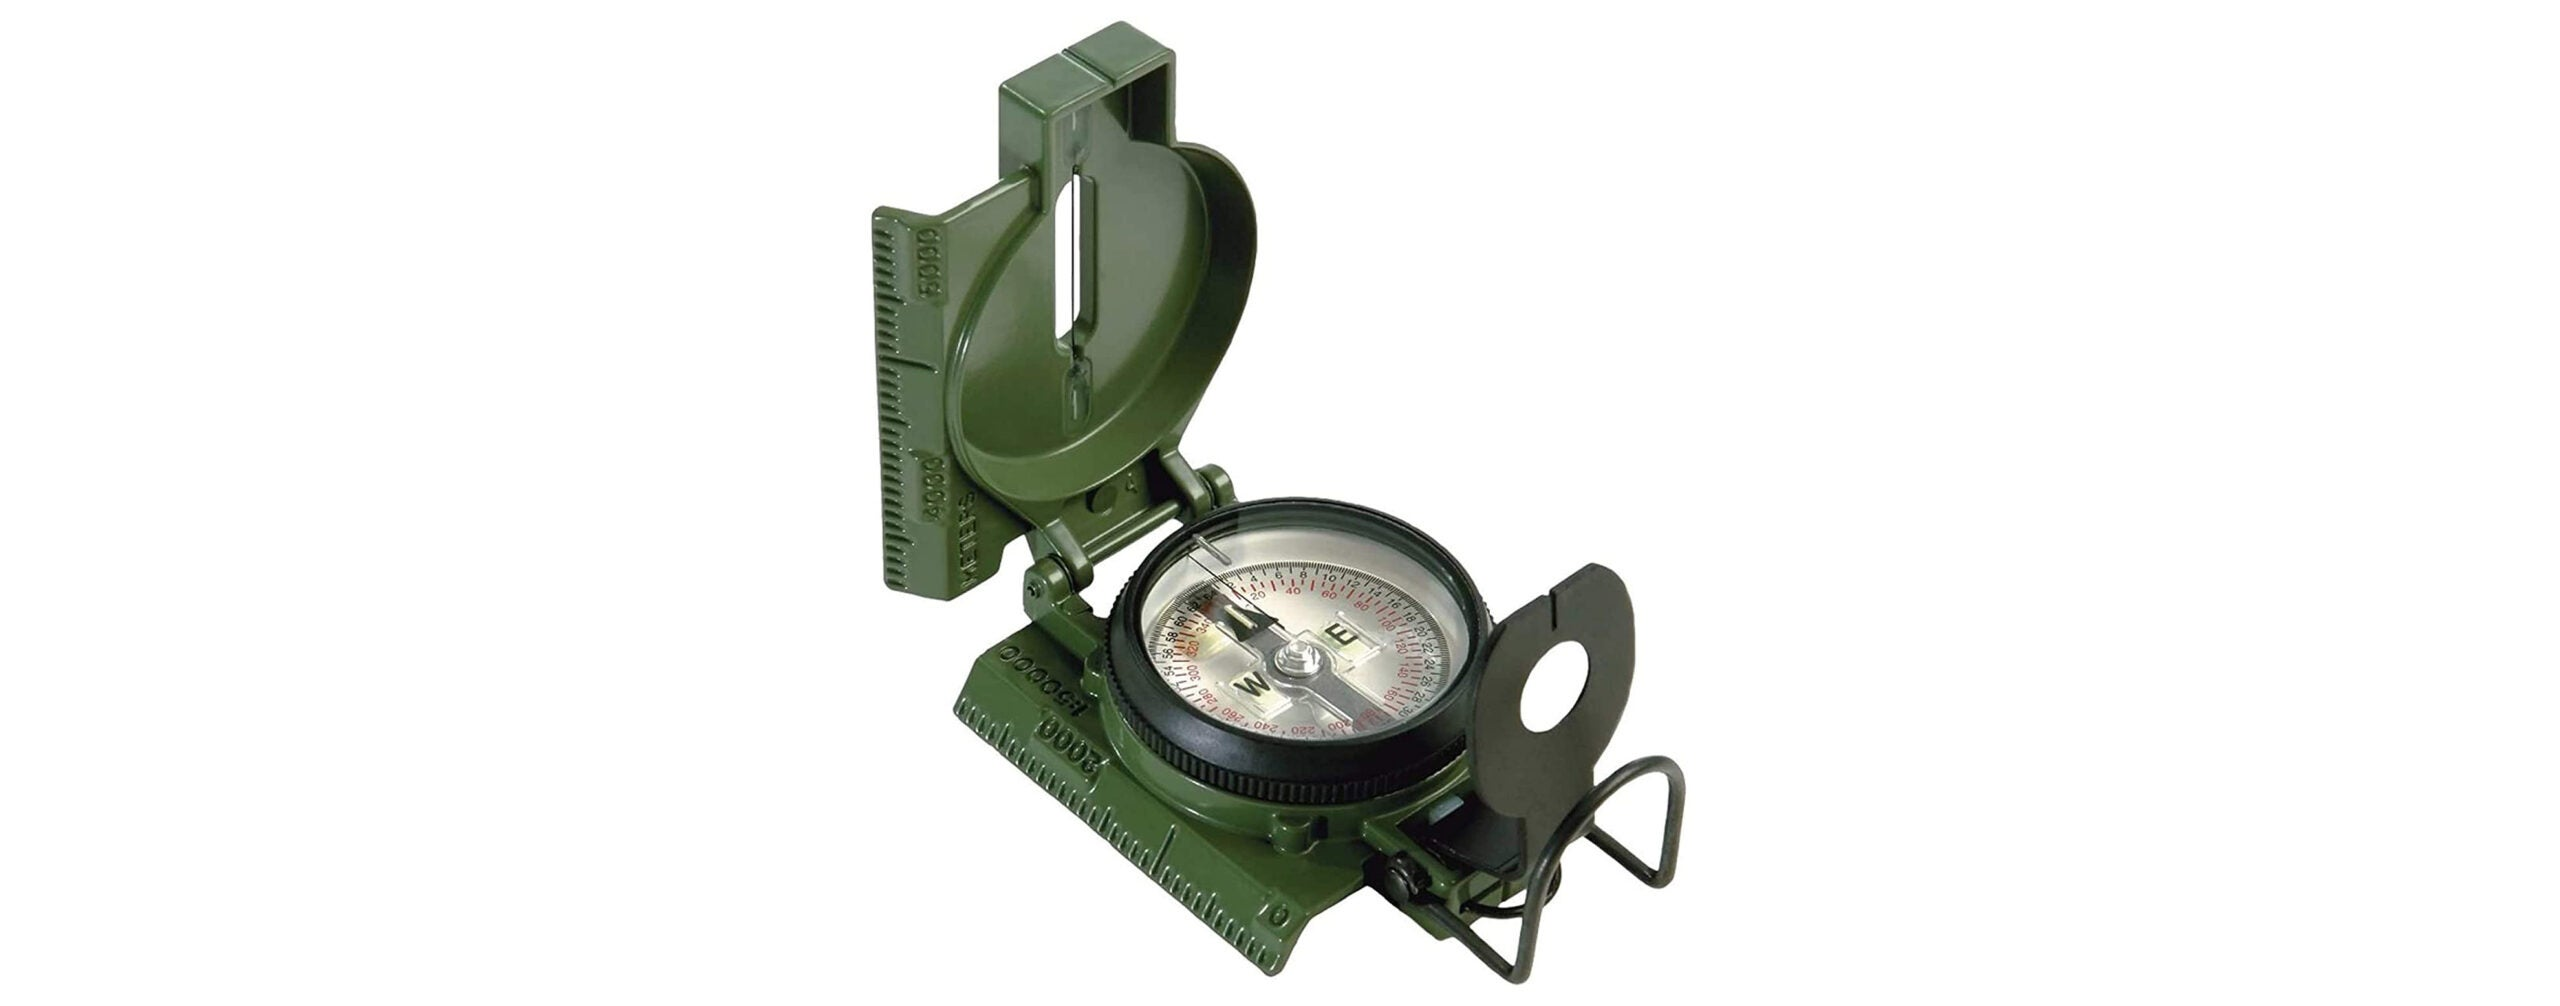 The Best Compasses For Survival (Review & Buying Guide) of 2021